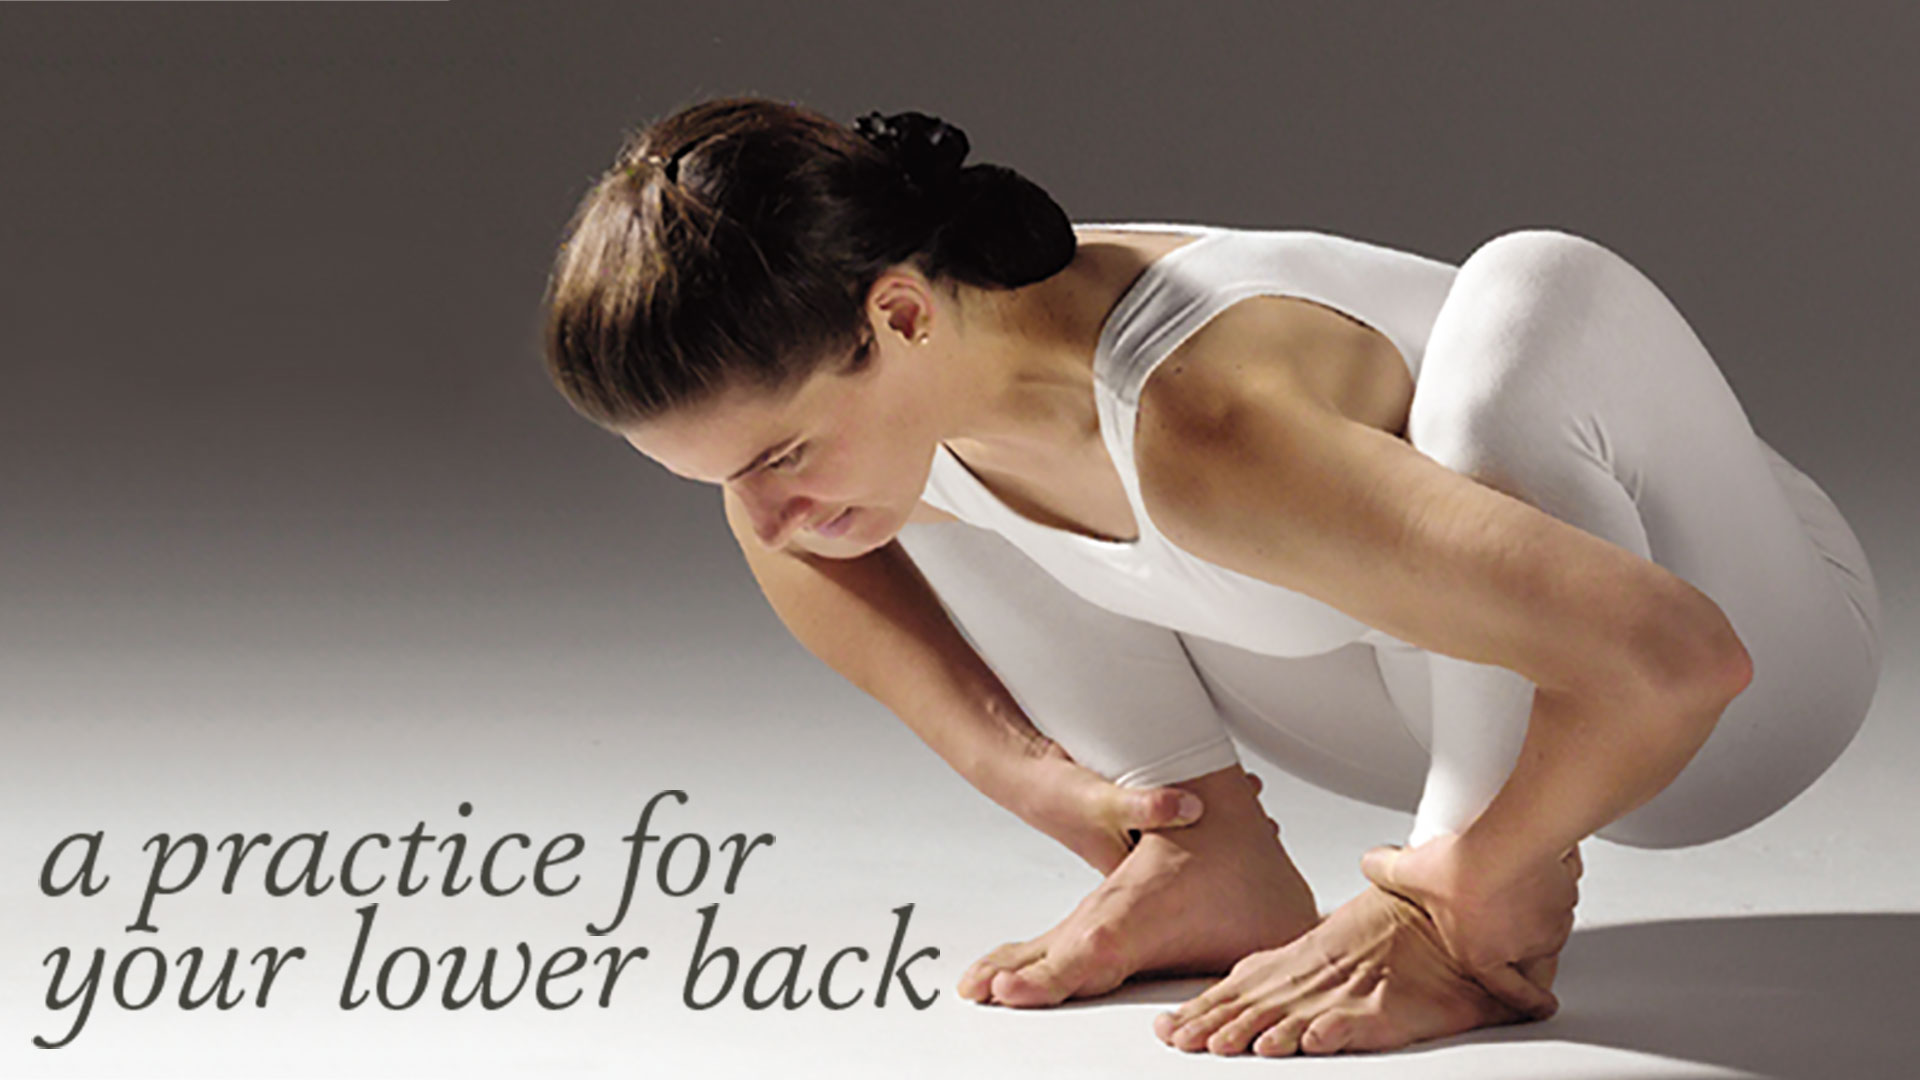 Release Tension Build Strength A Practice For Your Lower Back